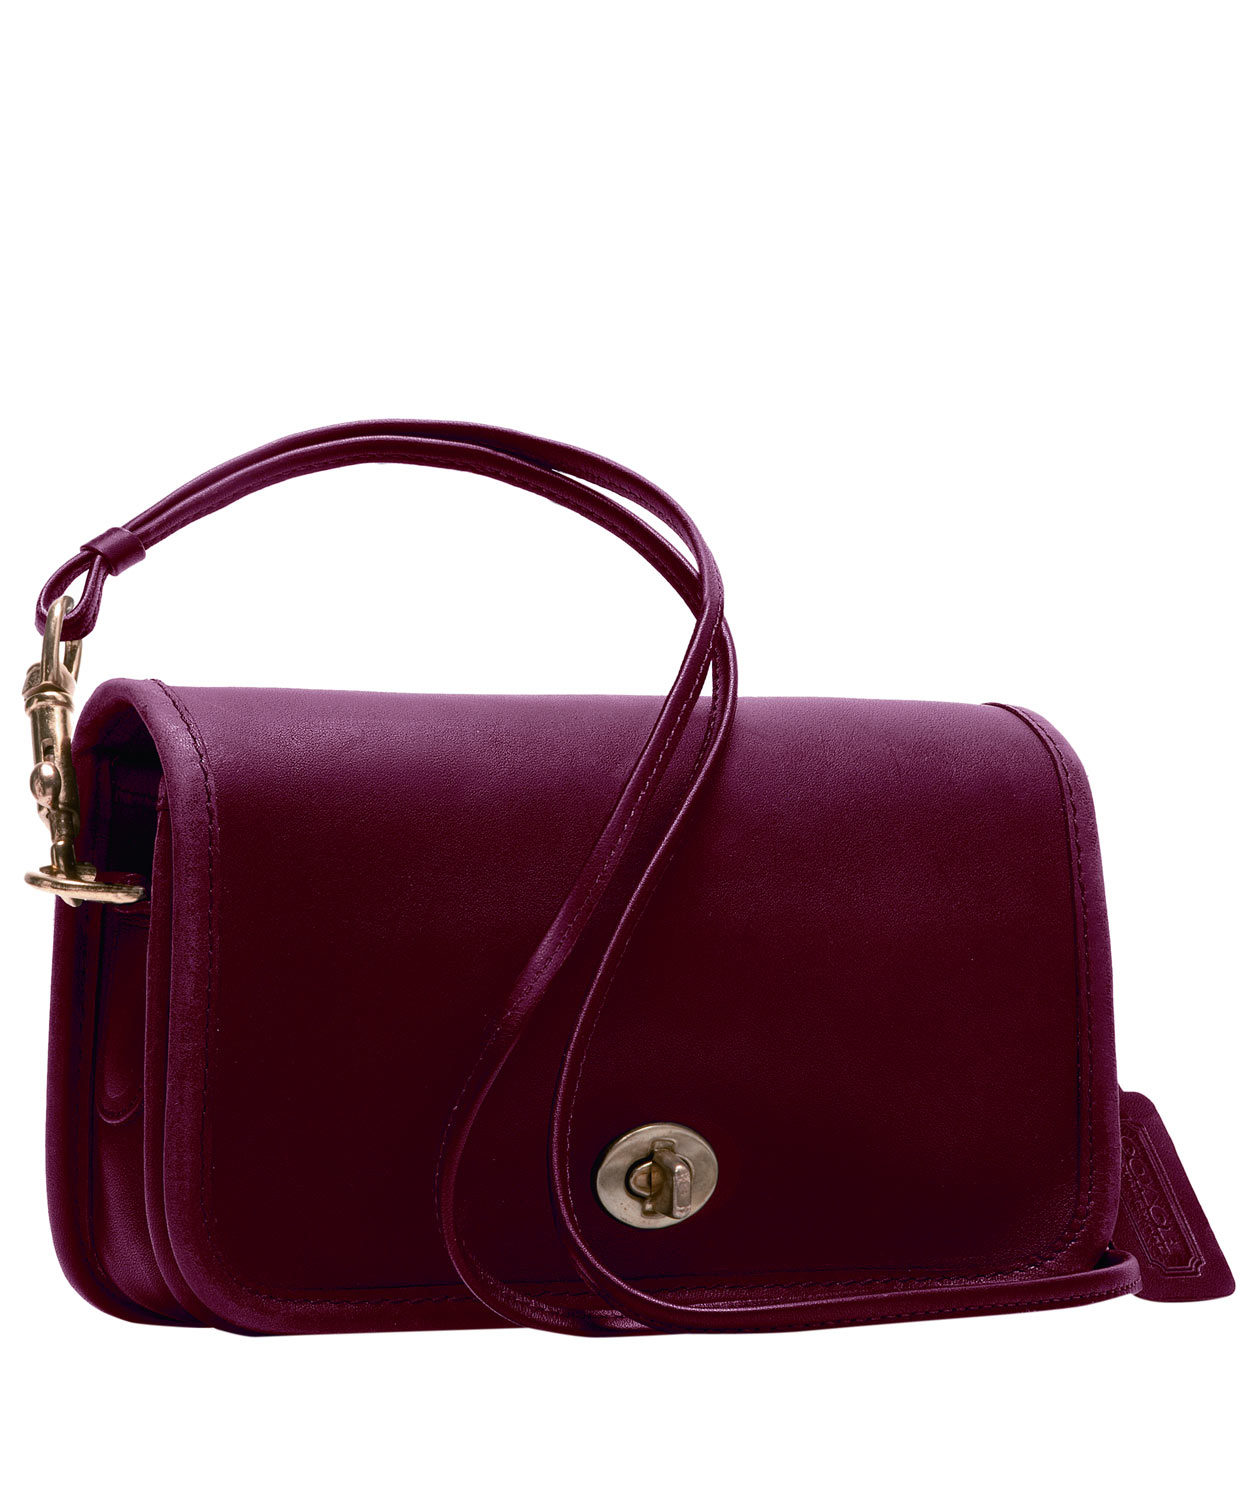 Berry Classic Leather Shoulder Bag Coach 115